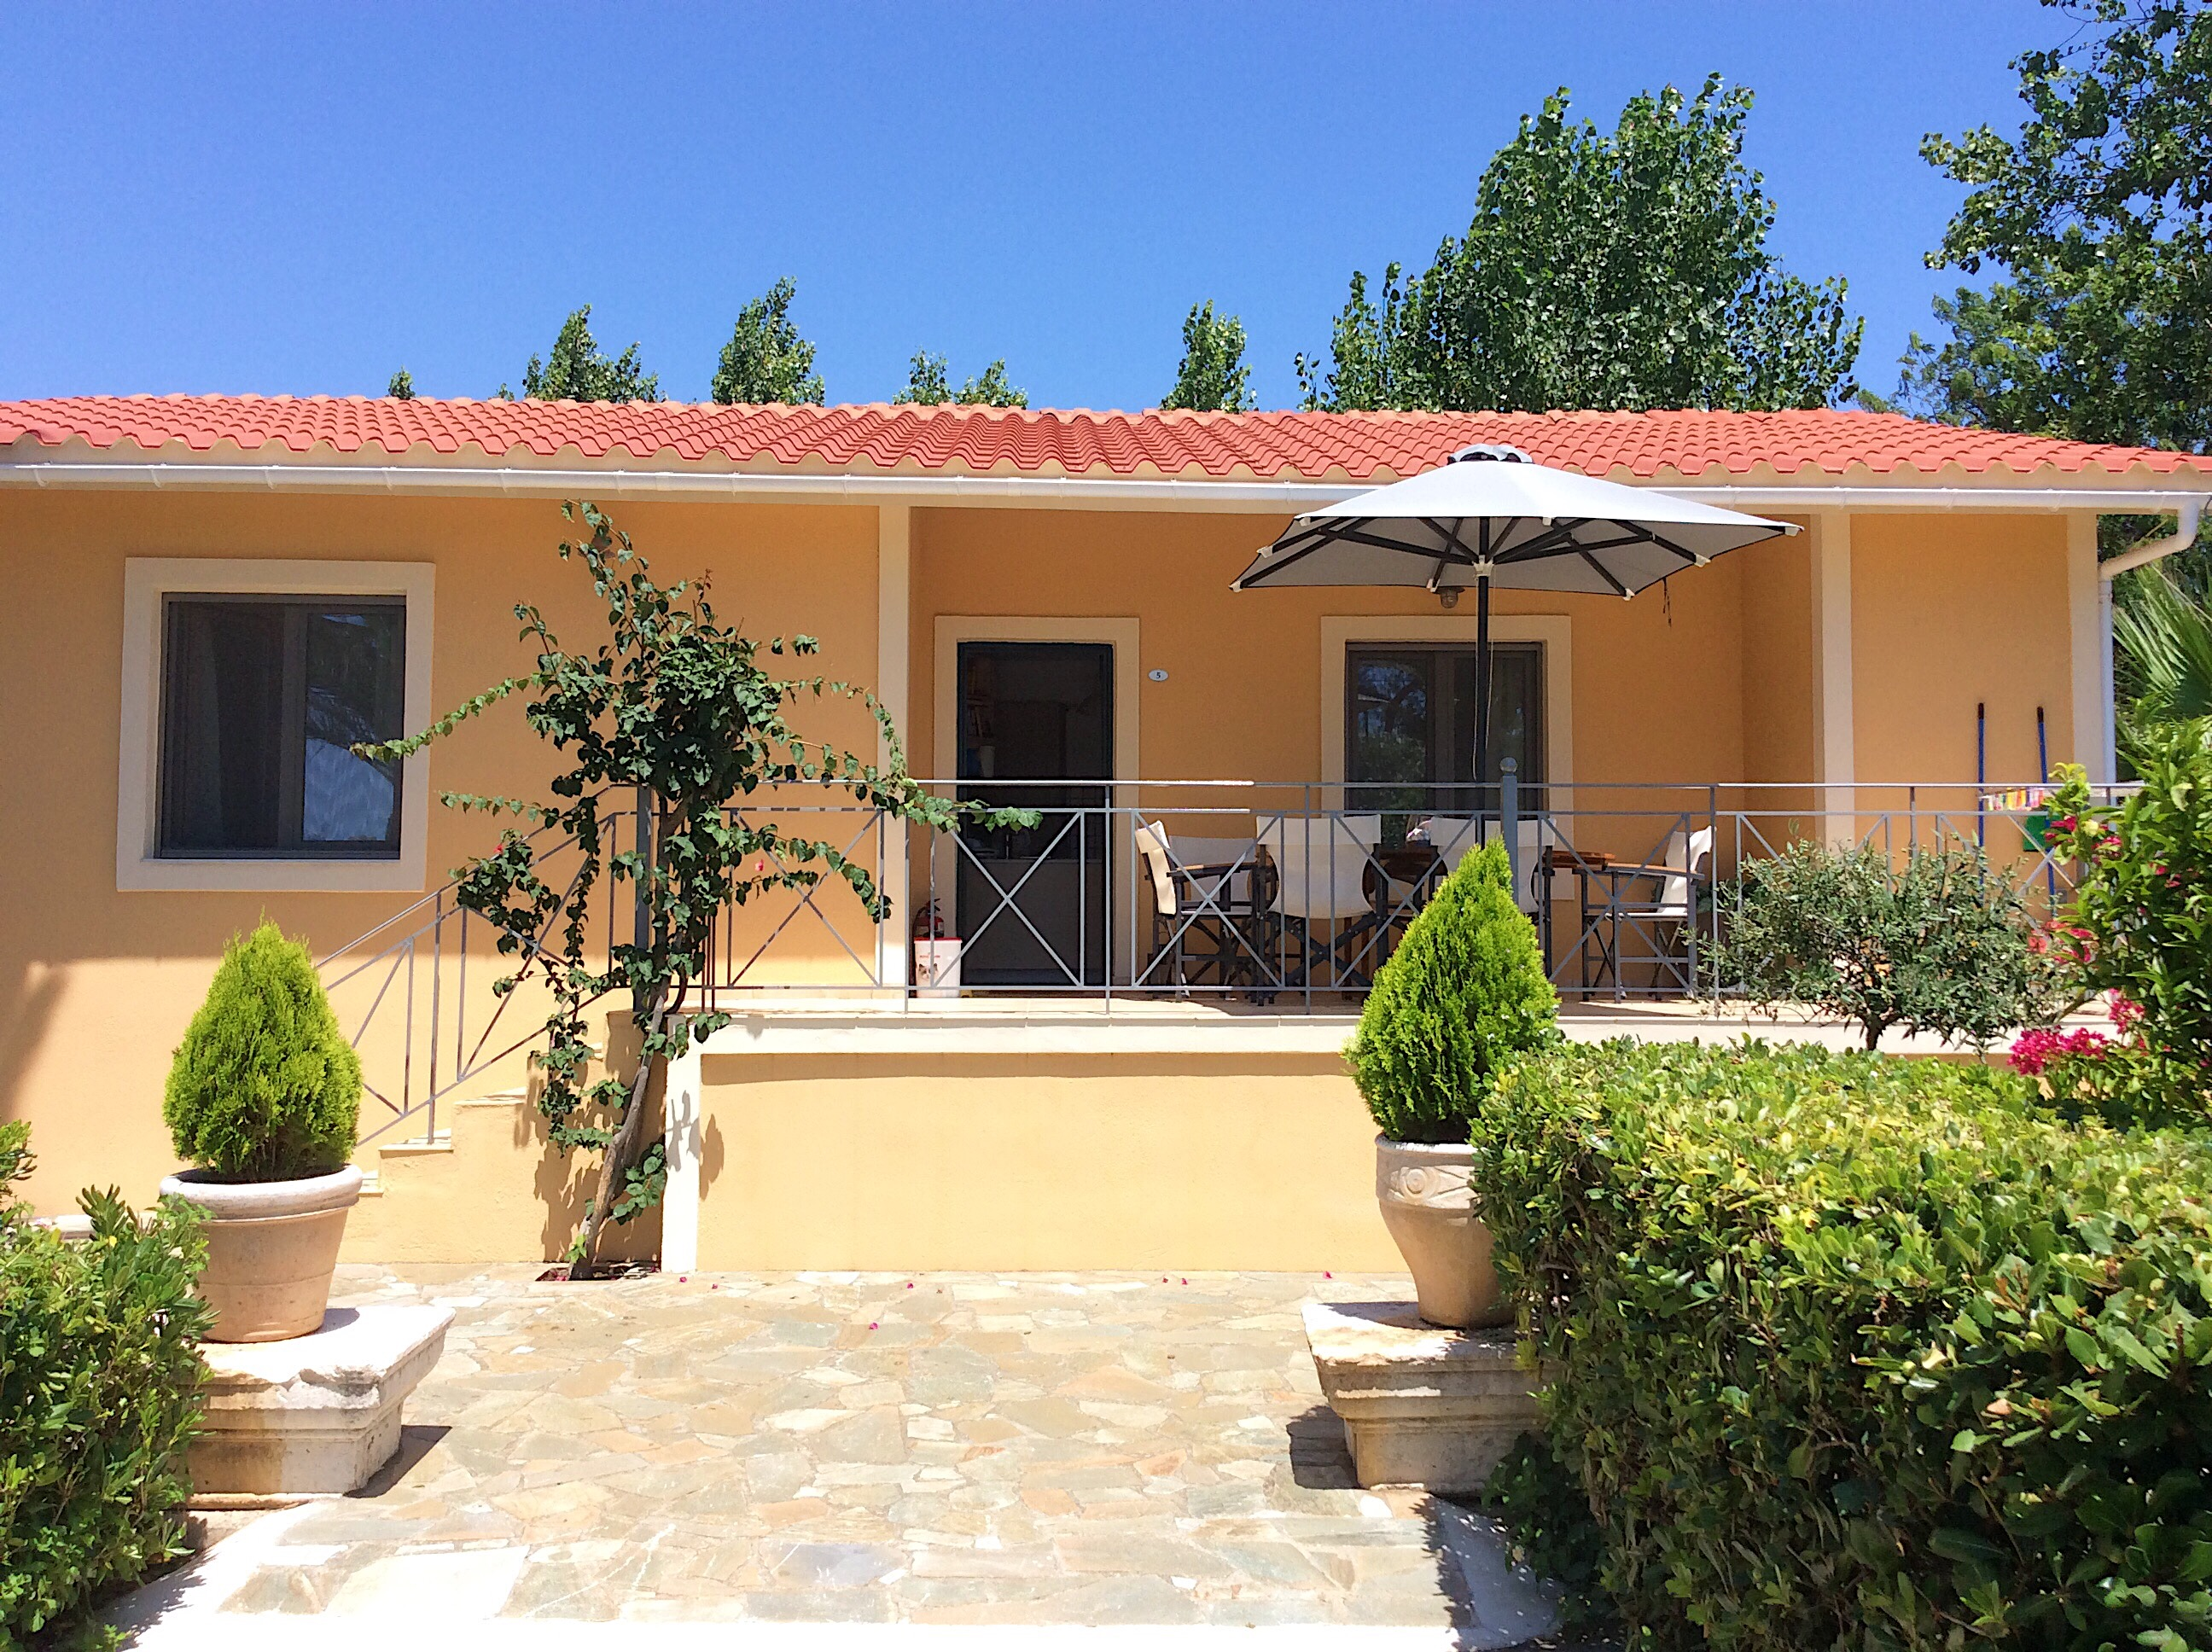 Kefalonia hotels: Lassi, 3 bedroom villa near Makris Gialos beach. Villas Kefalonia.Greece vacations.